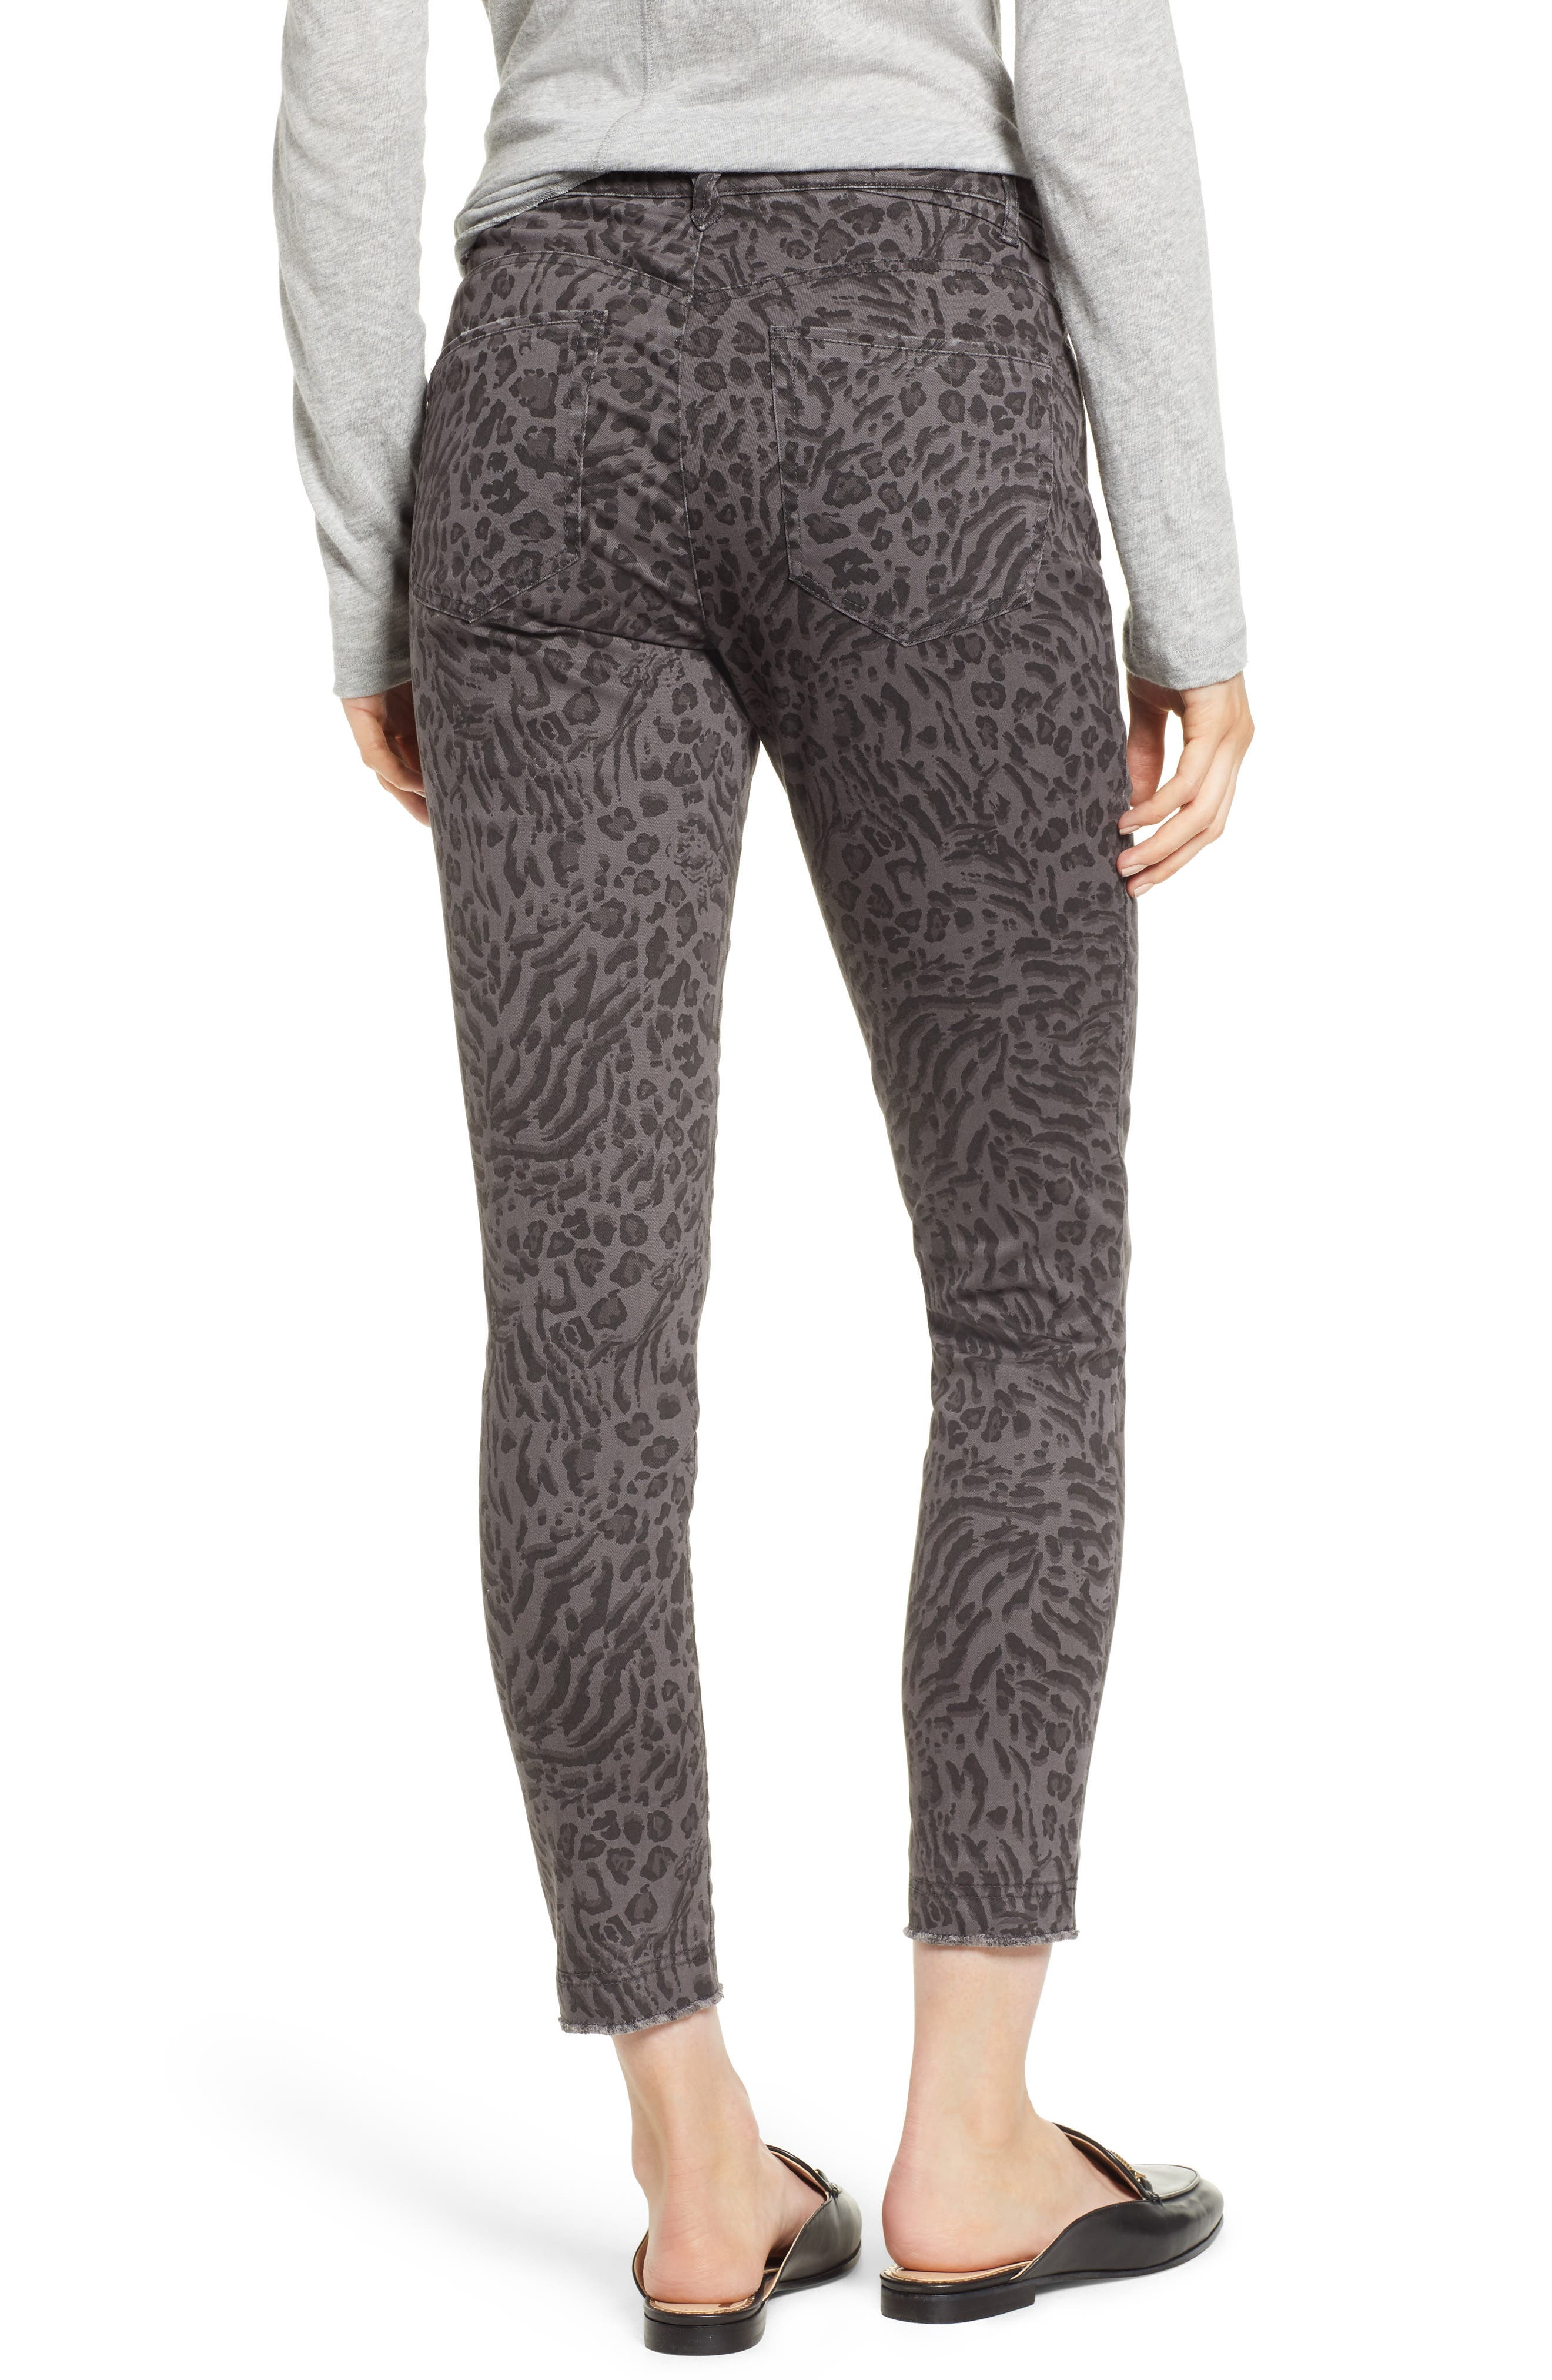 WIT & WISDOM, Ab-Solution Leopard Print High Waist Skinny Jeans, Alternate thumbnail 2, color, CHARCOAL